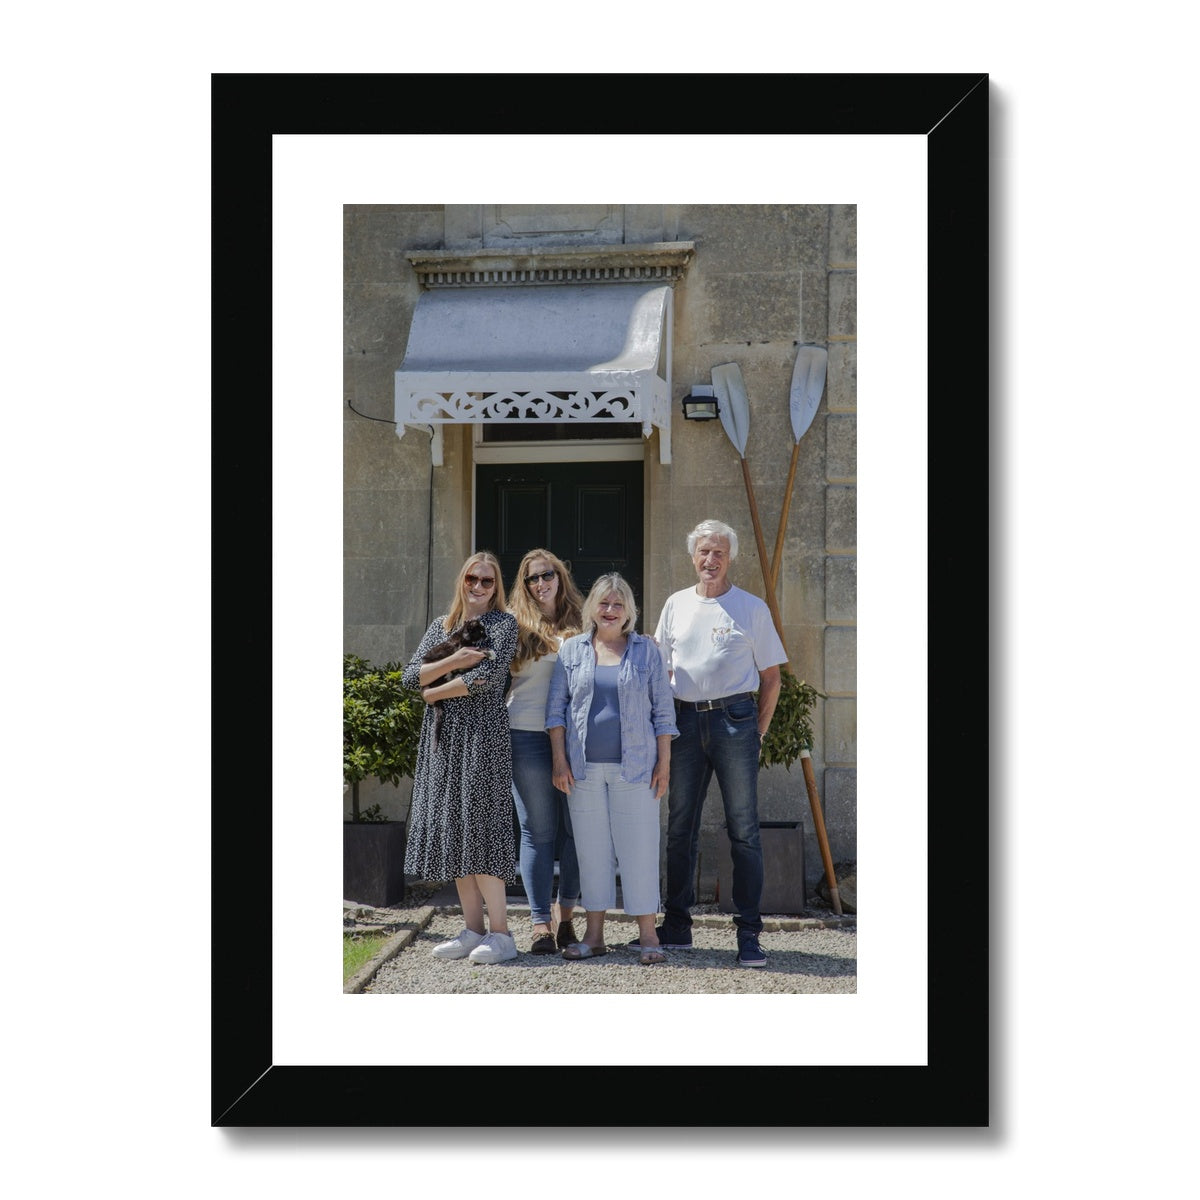 The Riekemanns_01_182 Framed & Mounted Print